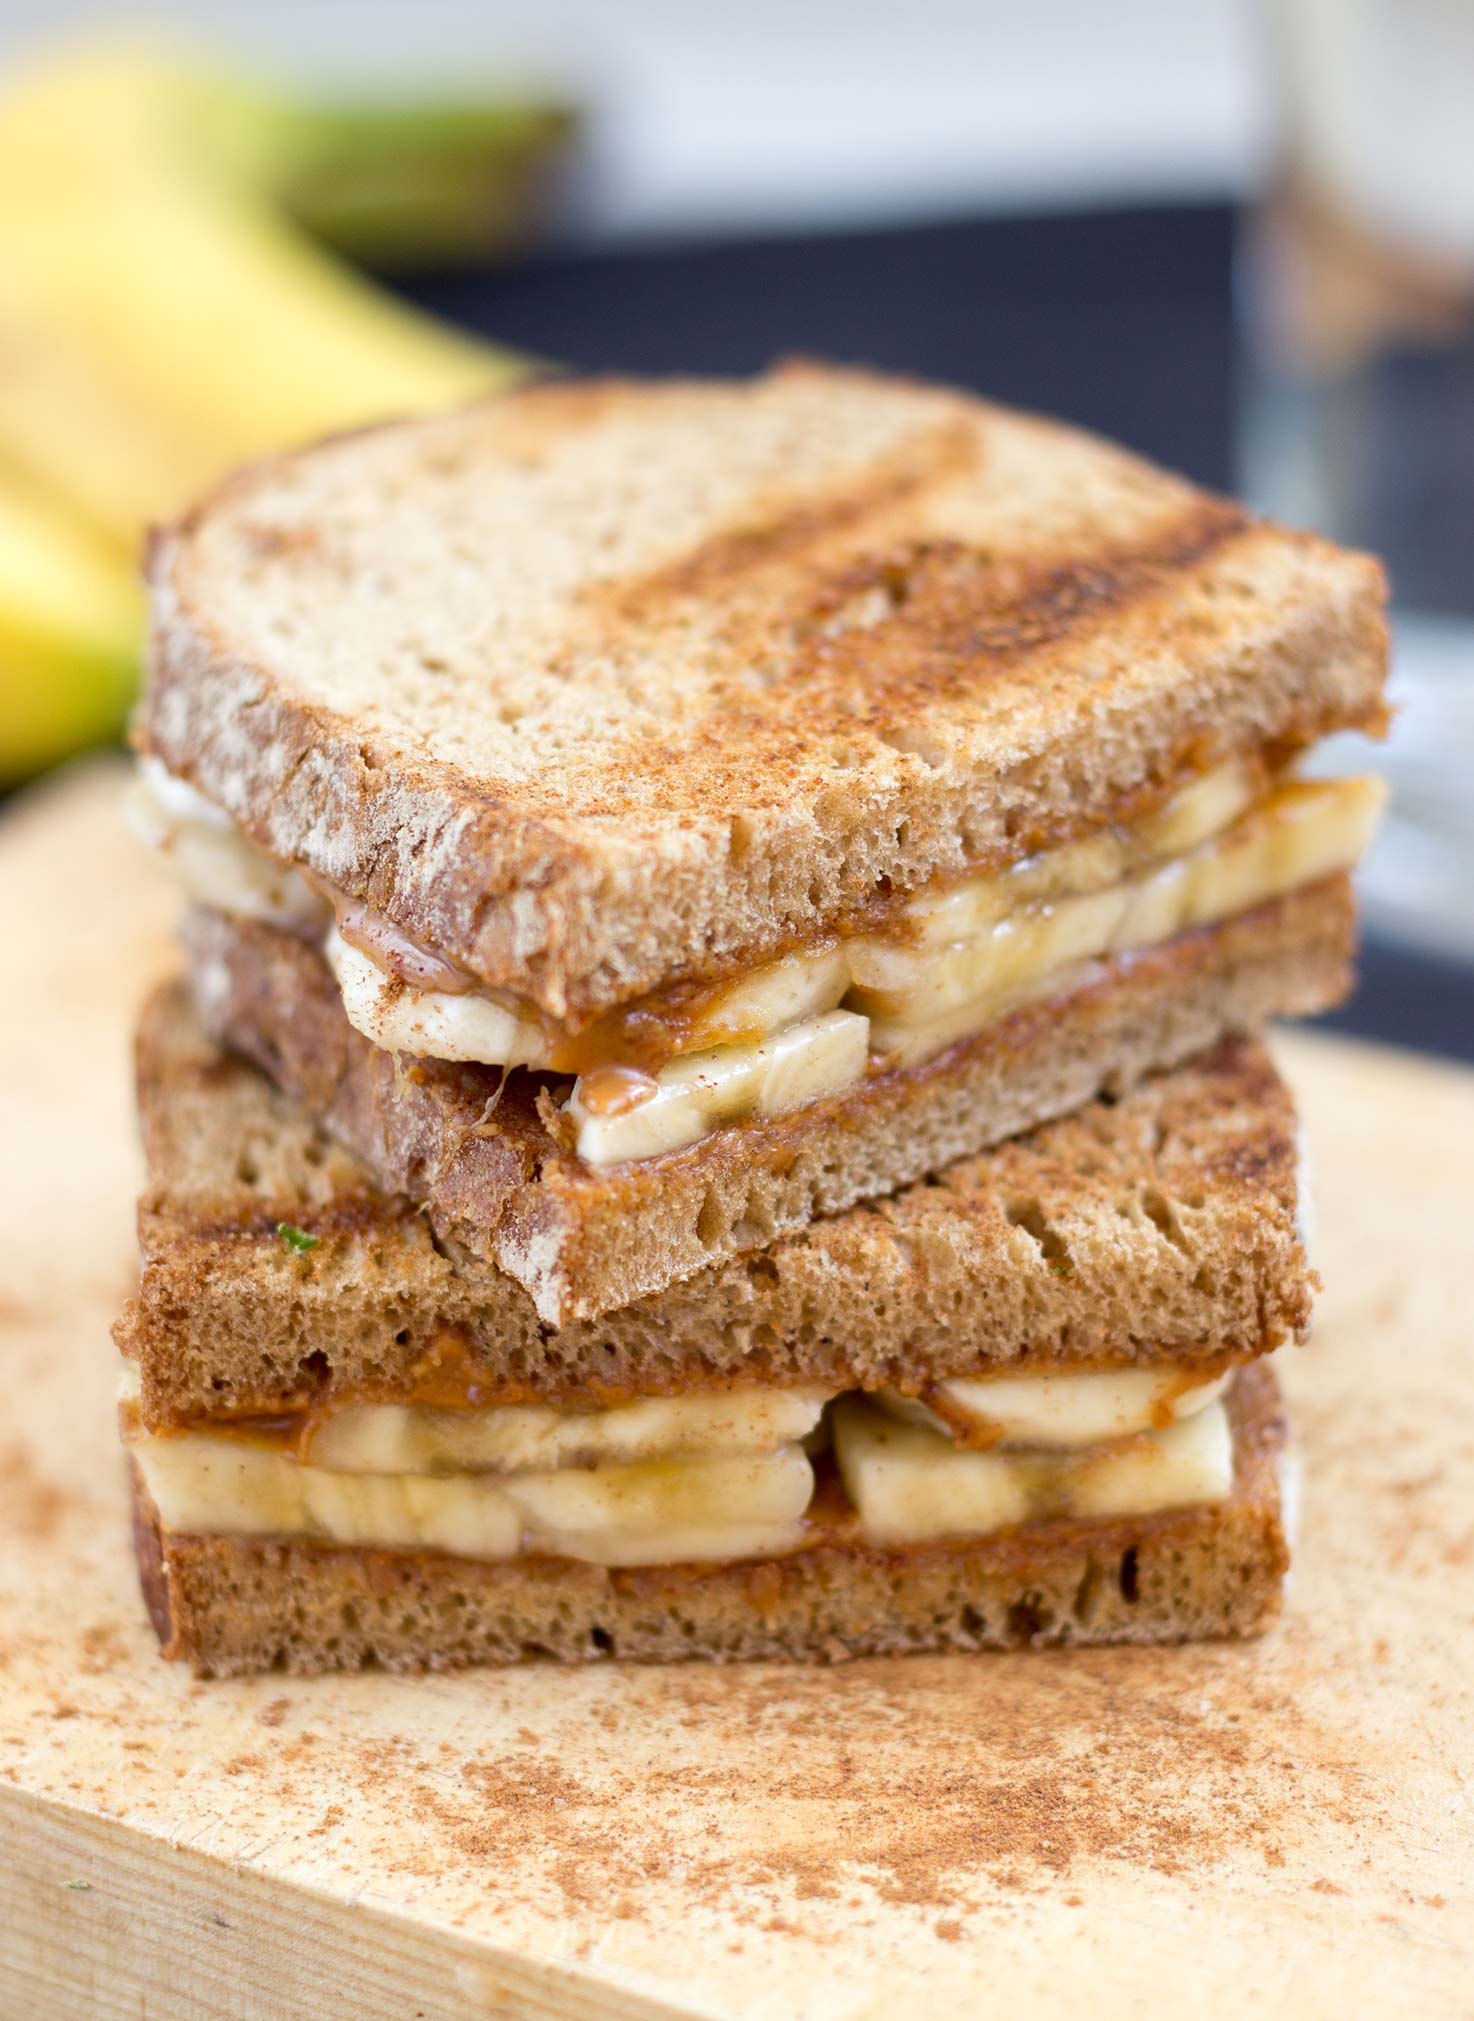 Two peanut butter and banana sandwiches are laid on the chopping board on the blue table with bananas | Hurry The Food Up